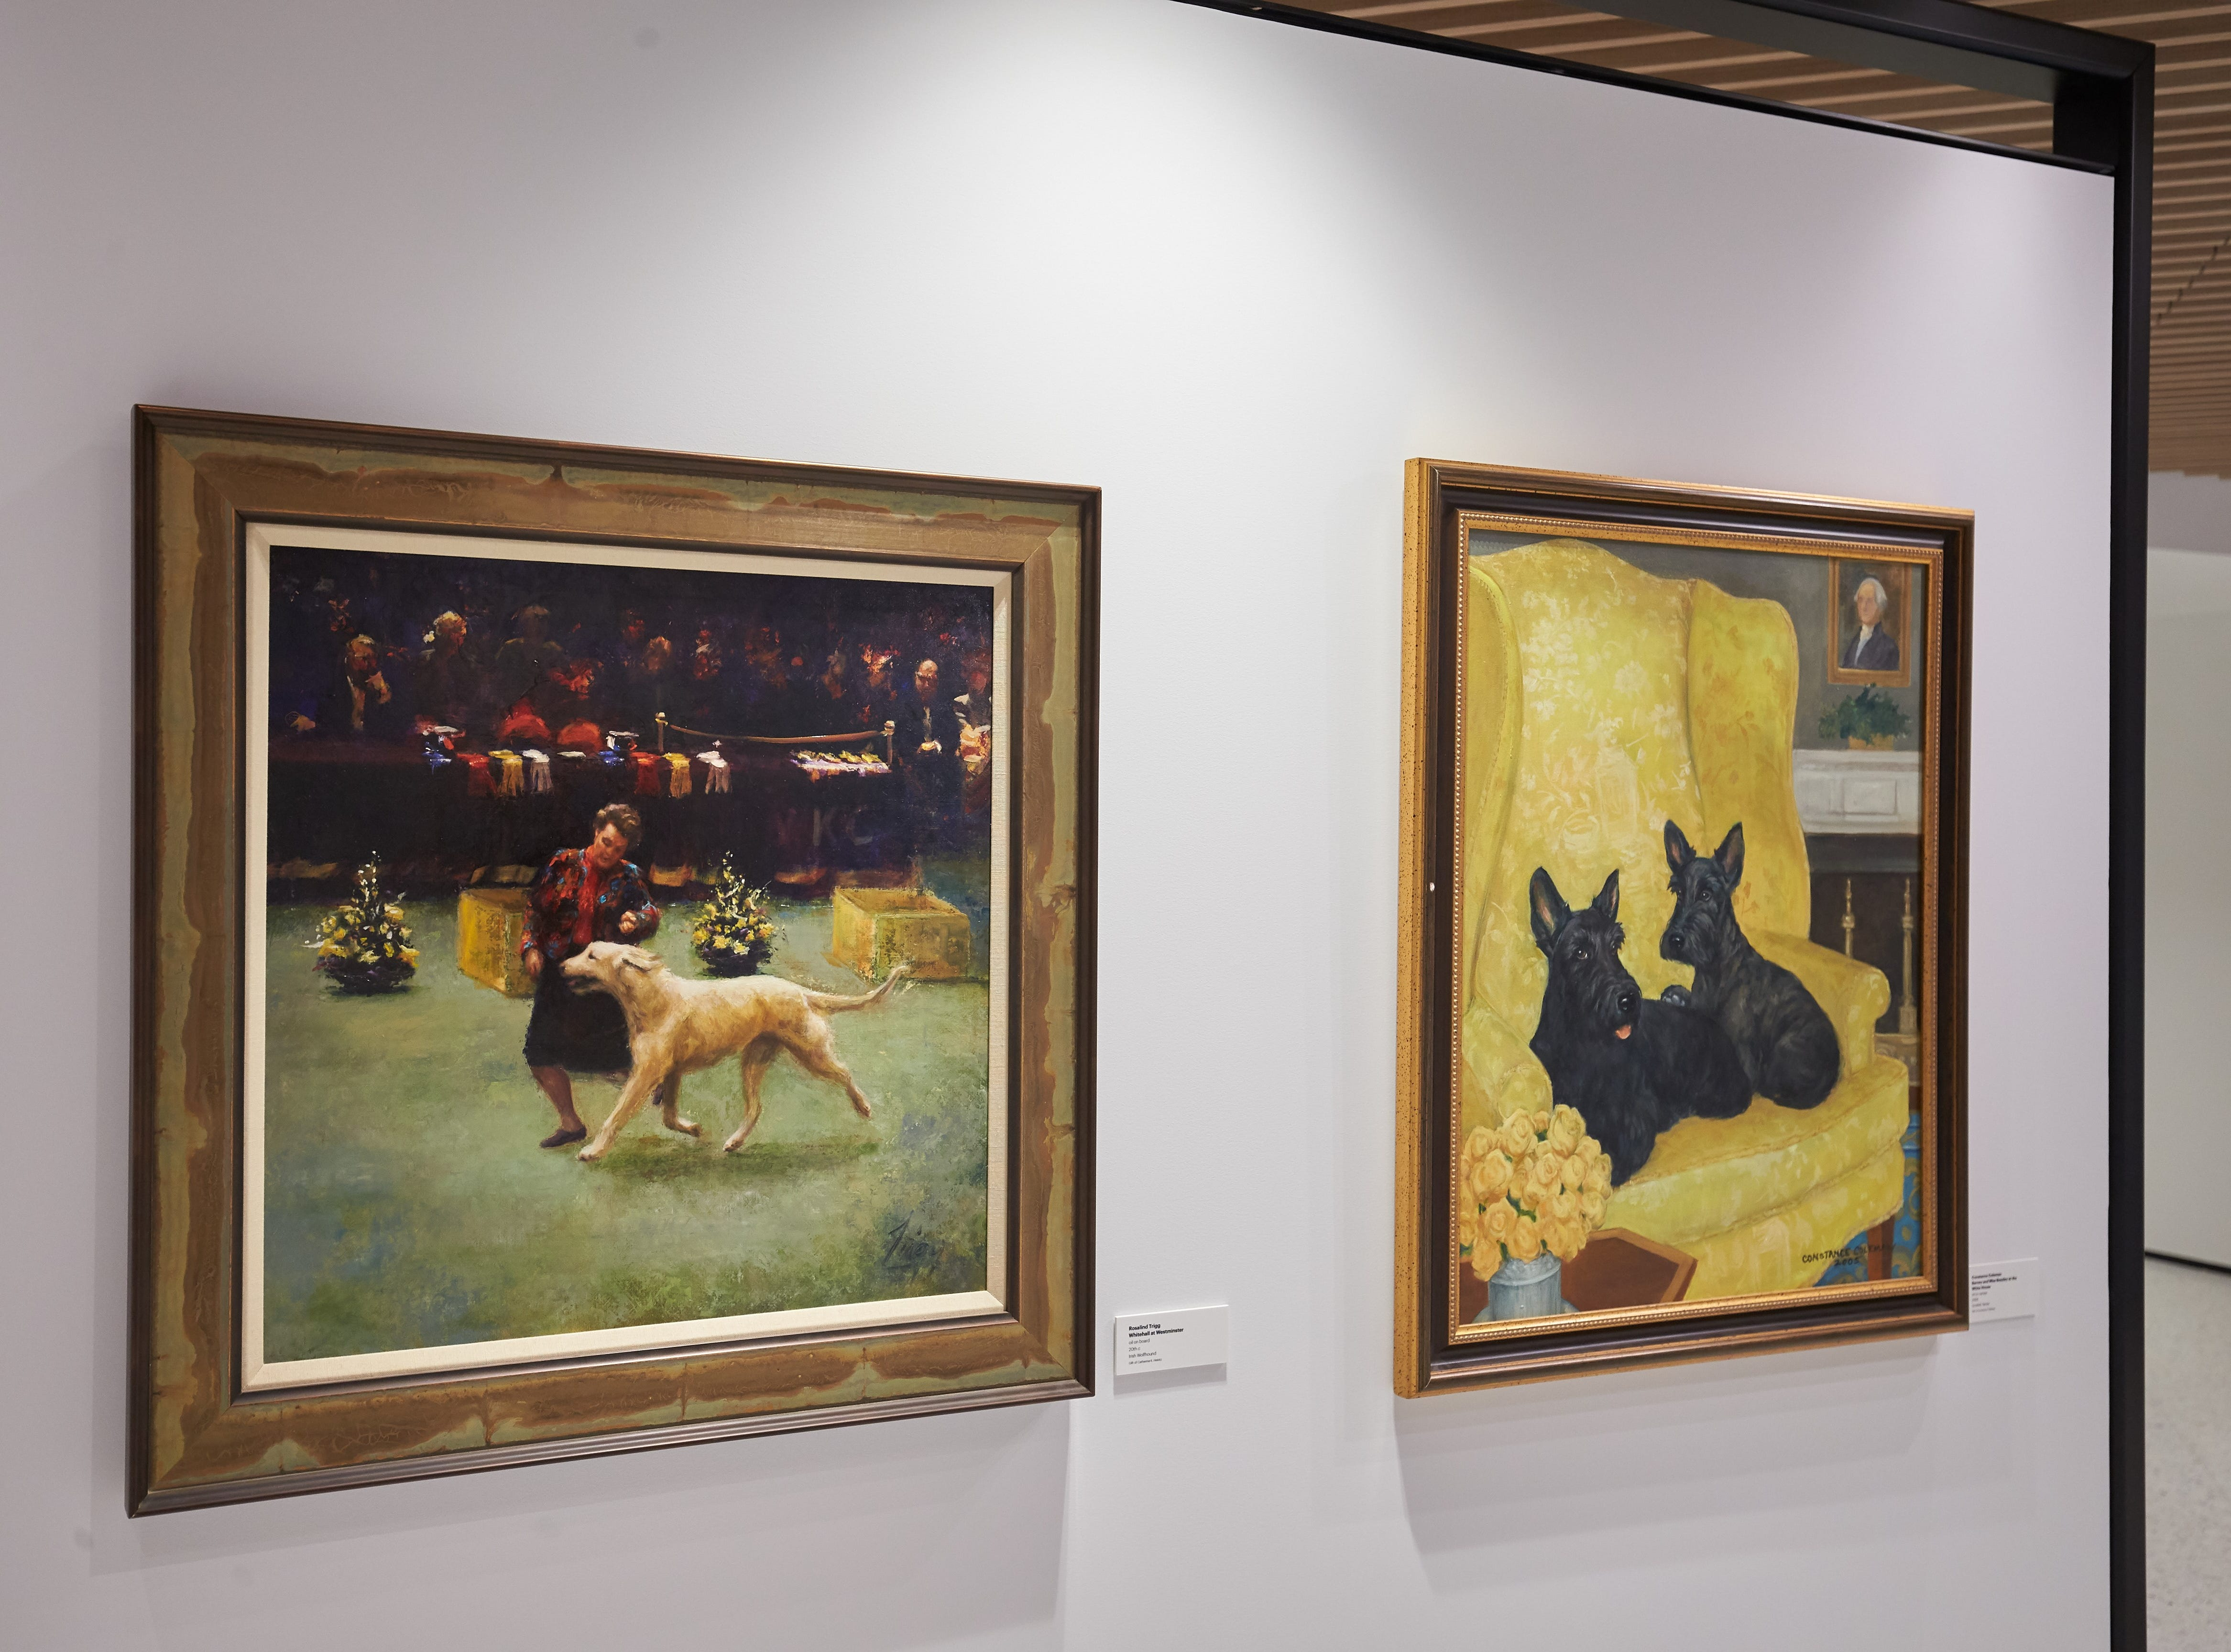 Portraits of purebred dogs hang in the Museum of the Dog in Manhattan.